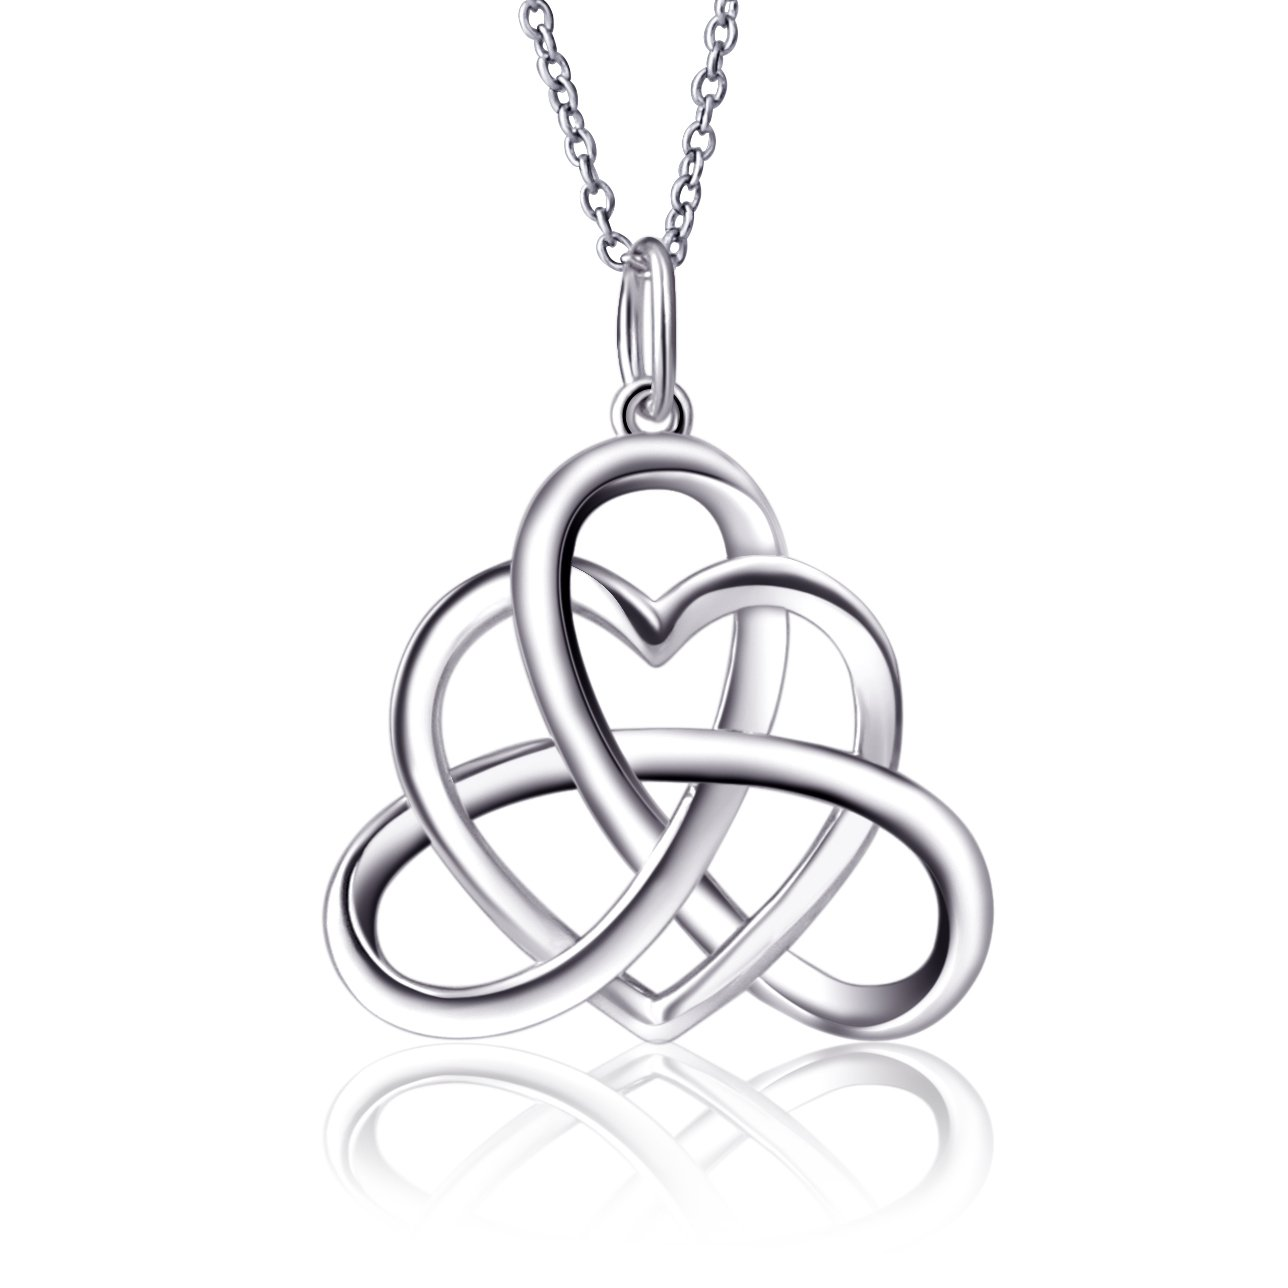 925 Sterling Silver Good Luck Irish Celtic Knot Vintage Triangle Heart Love Knot Pendant Necklace Birthday Gift Women Girls, 18 inch Rolo Chain 18 Silver Light Jewelry UK_B01HYX2760